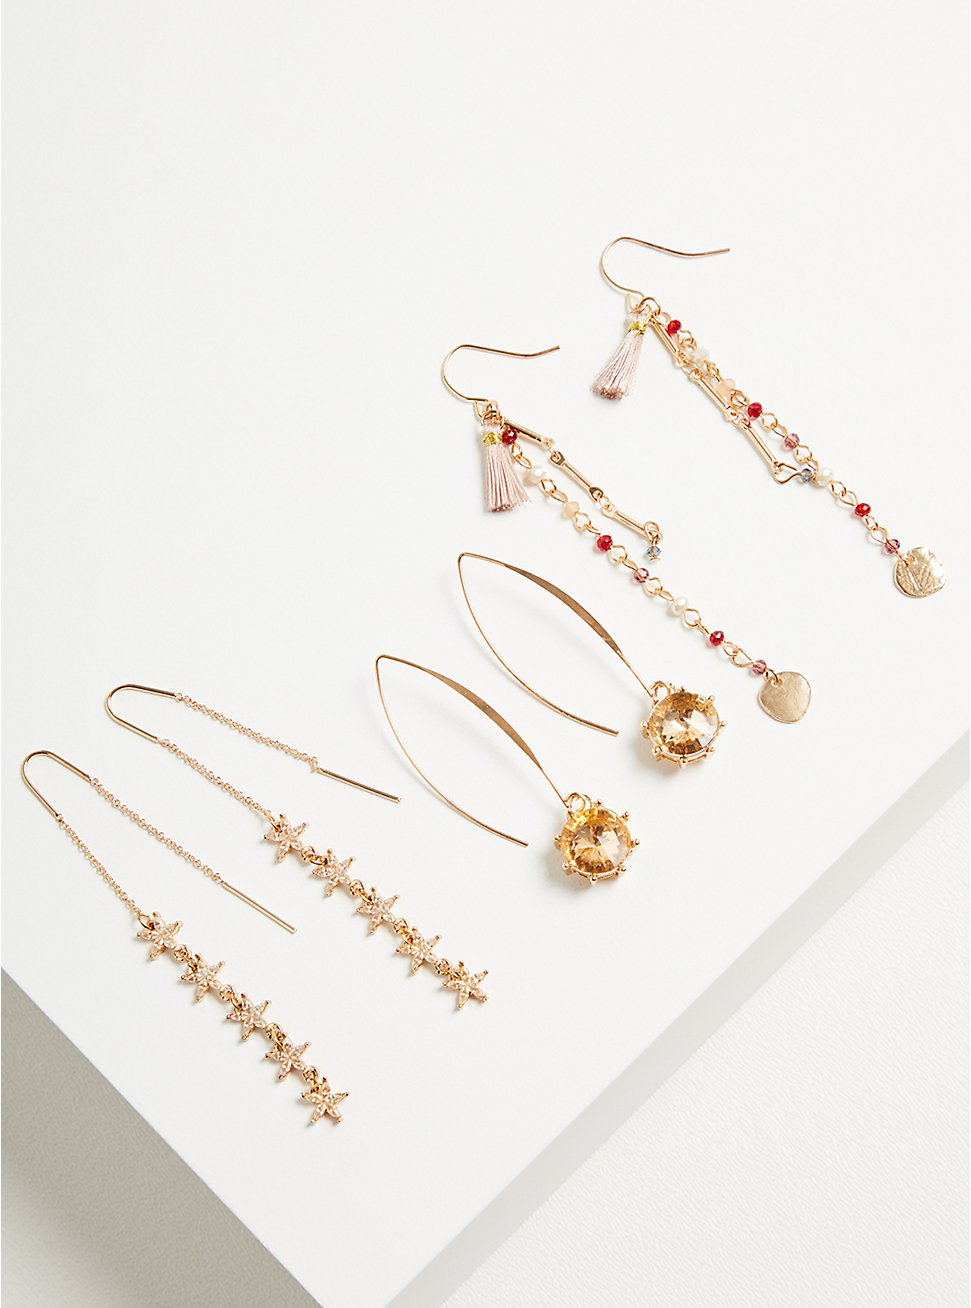 Plus Size Linear Threader Earring Set of 3  - Gold Tone, Blush & Wine, , hi-res